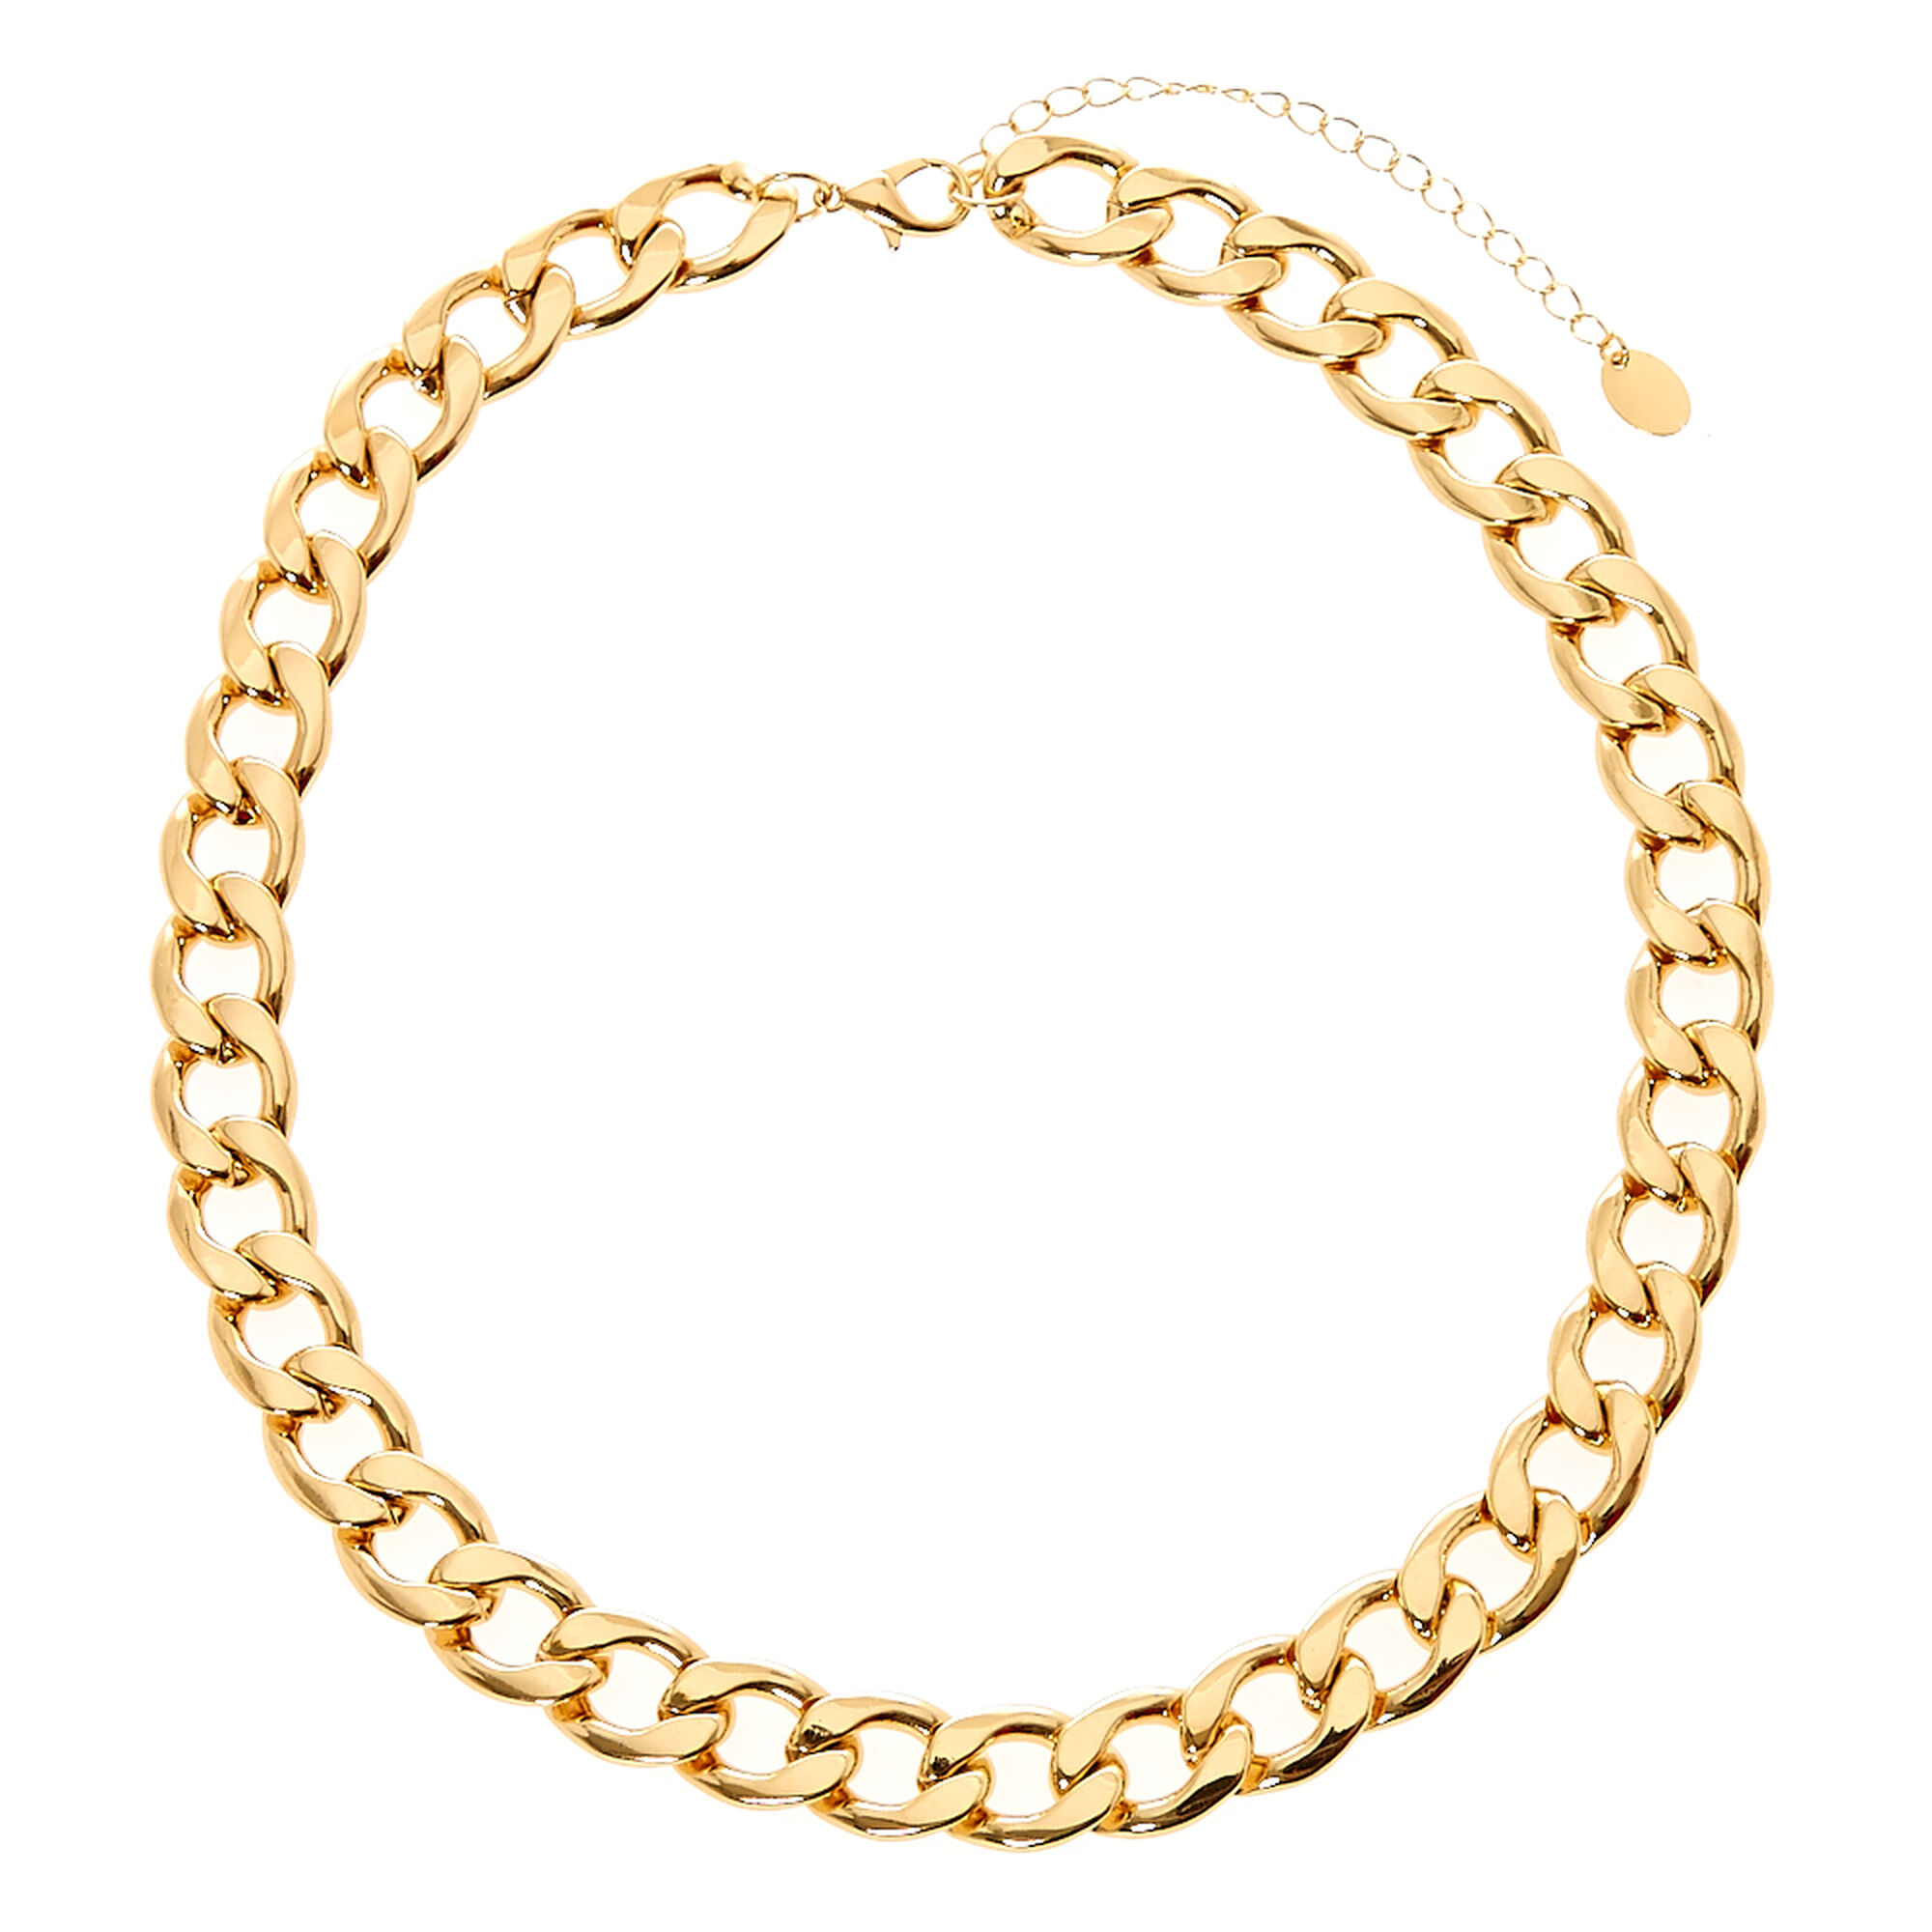 Thick Gold Chain Link Necklace   Icing US